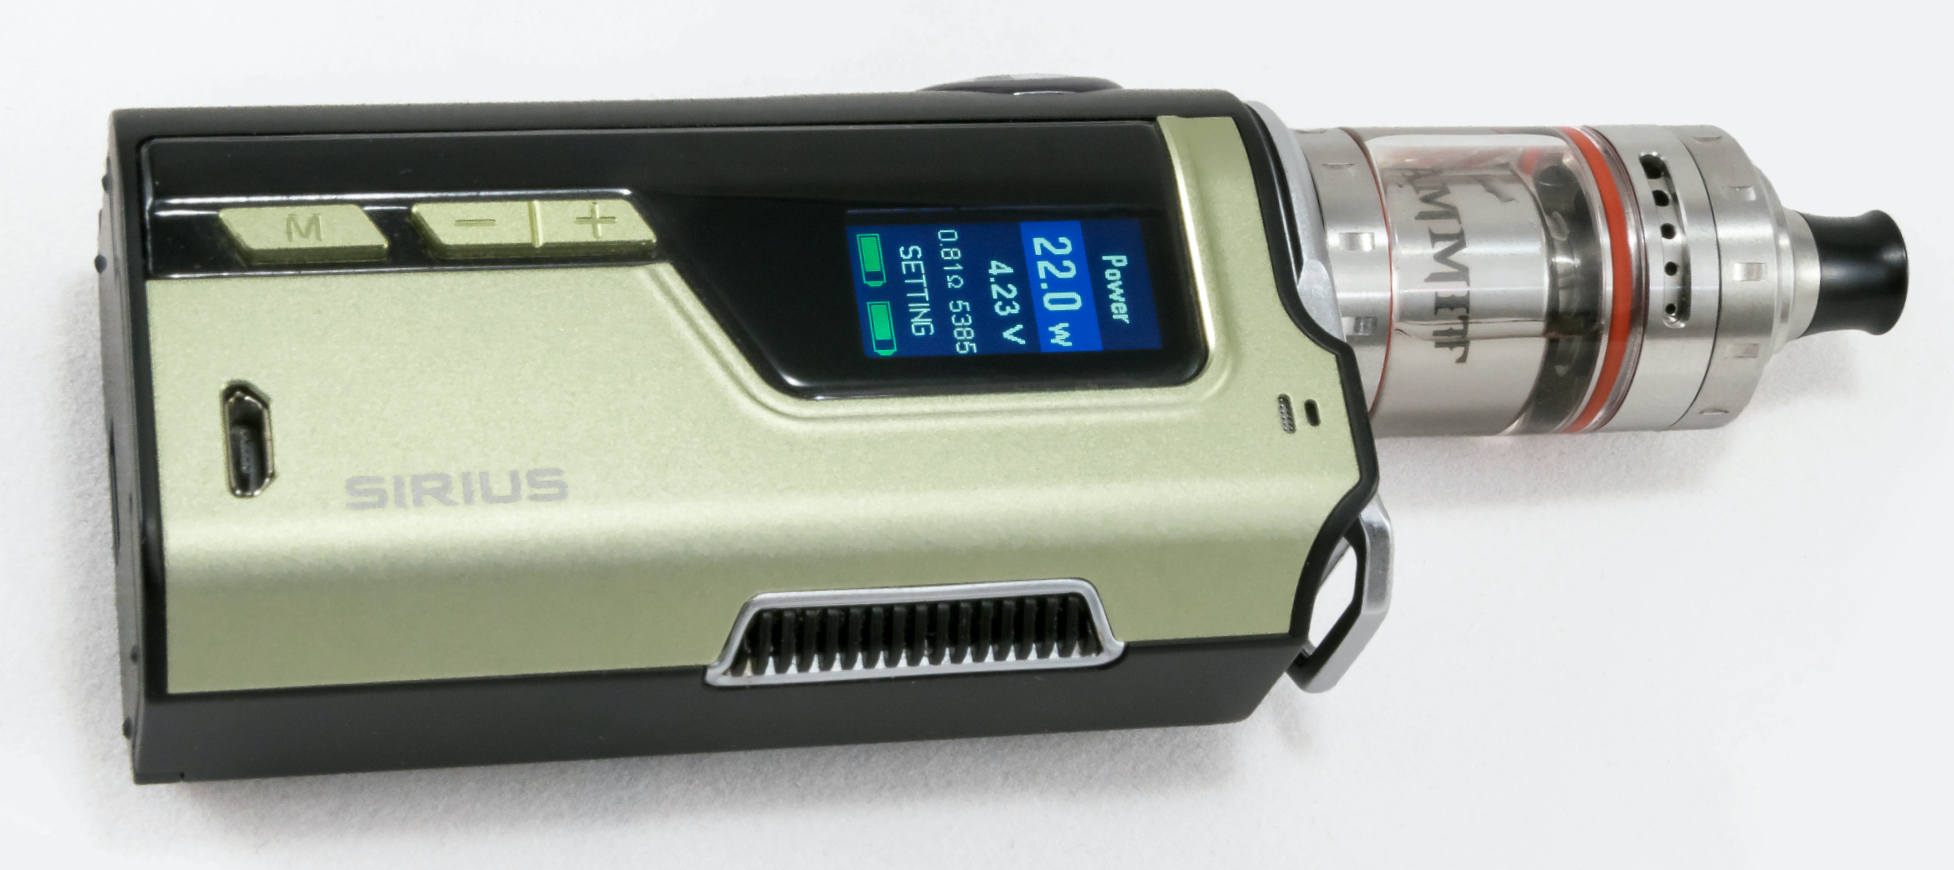 Photo of the old, clunky style of vaping devices